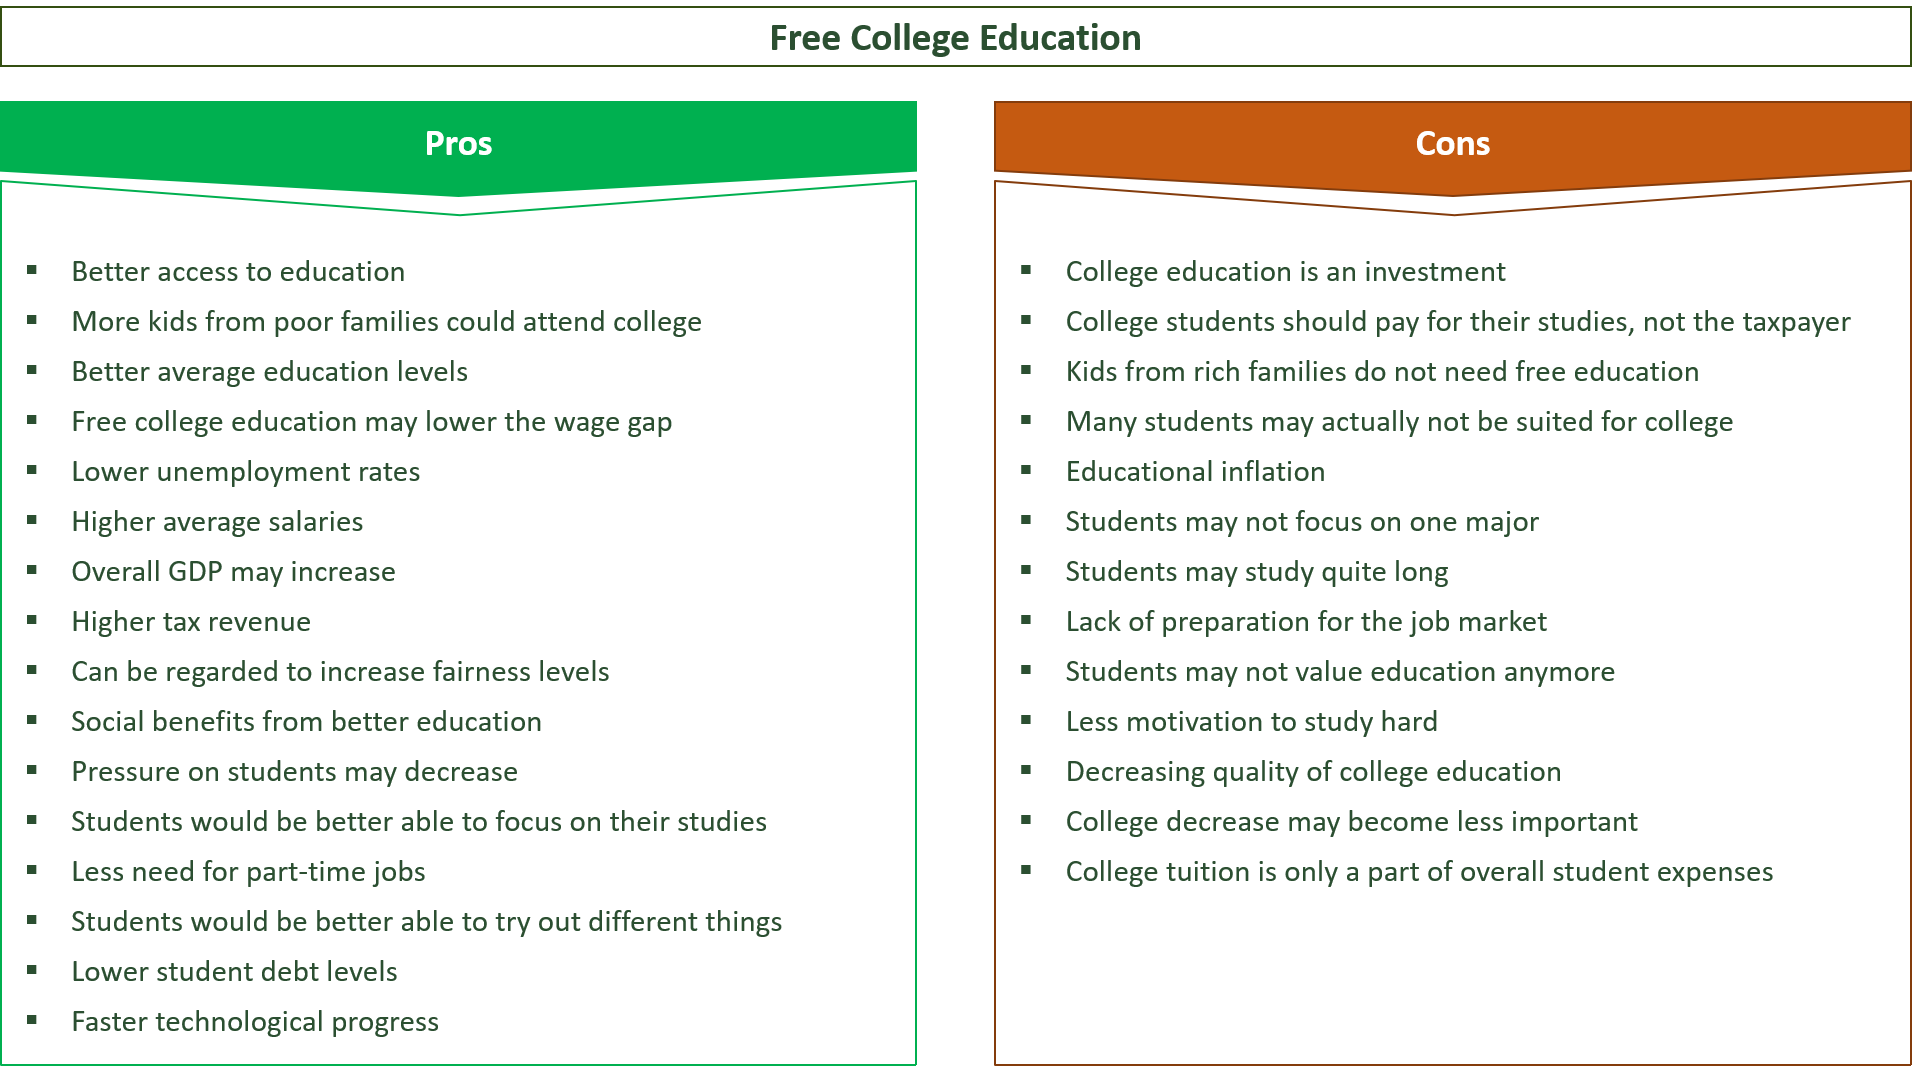 advantages and disadvantages of free college